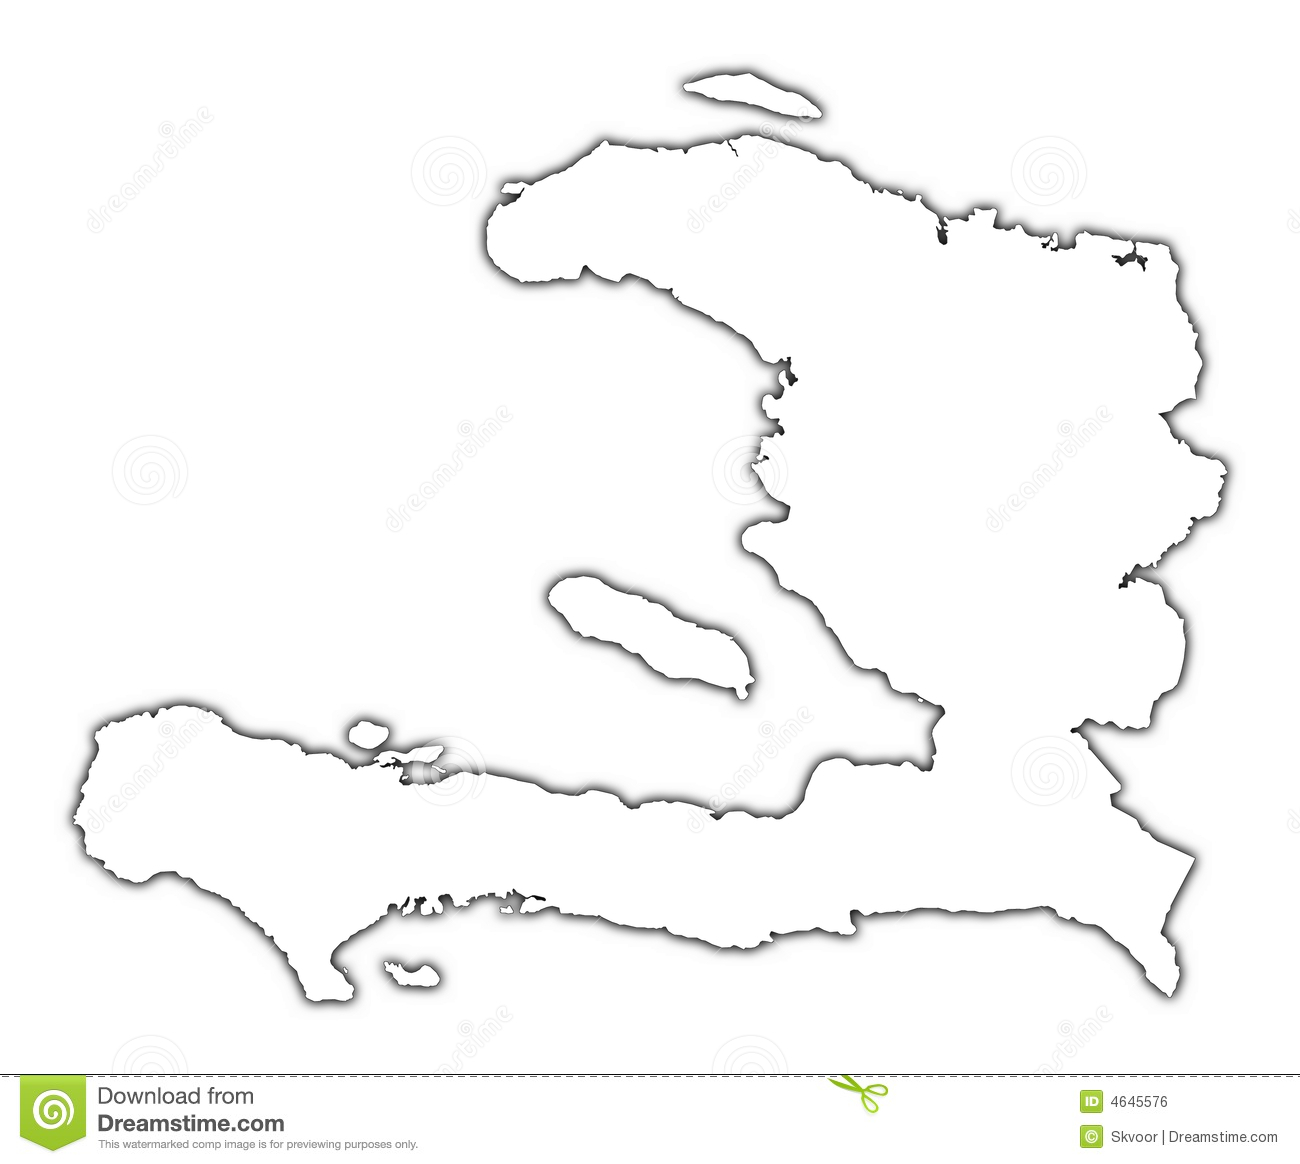 Haiti Map Outline Haiti outline map stock illustration. Illustration of detailed